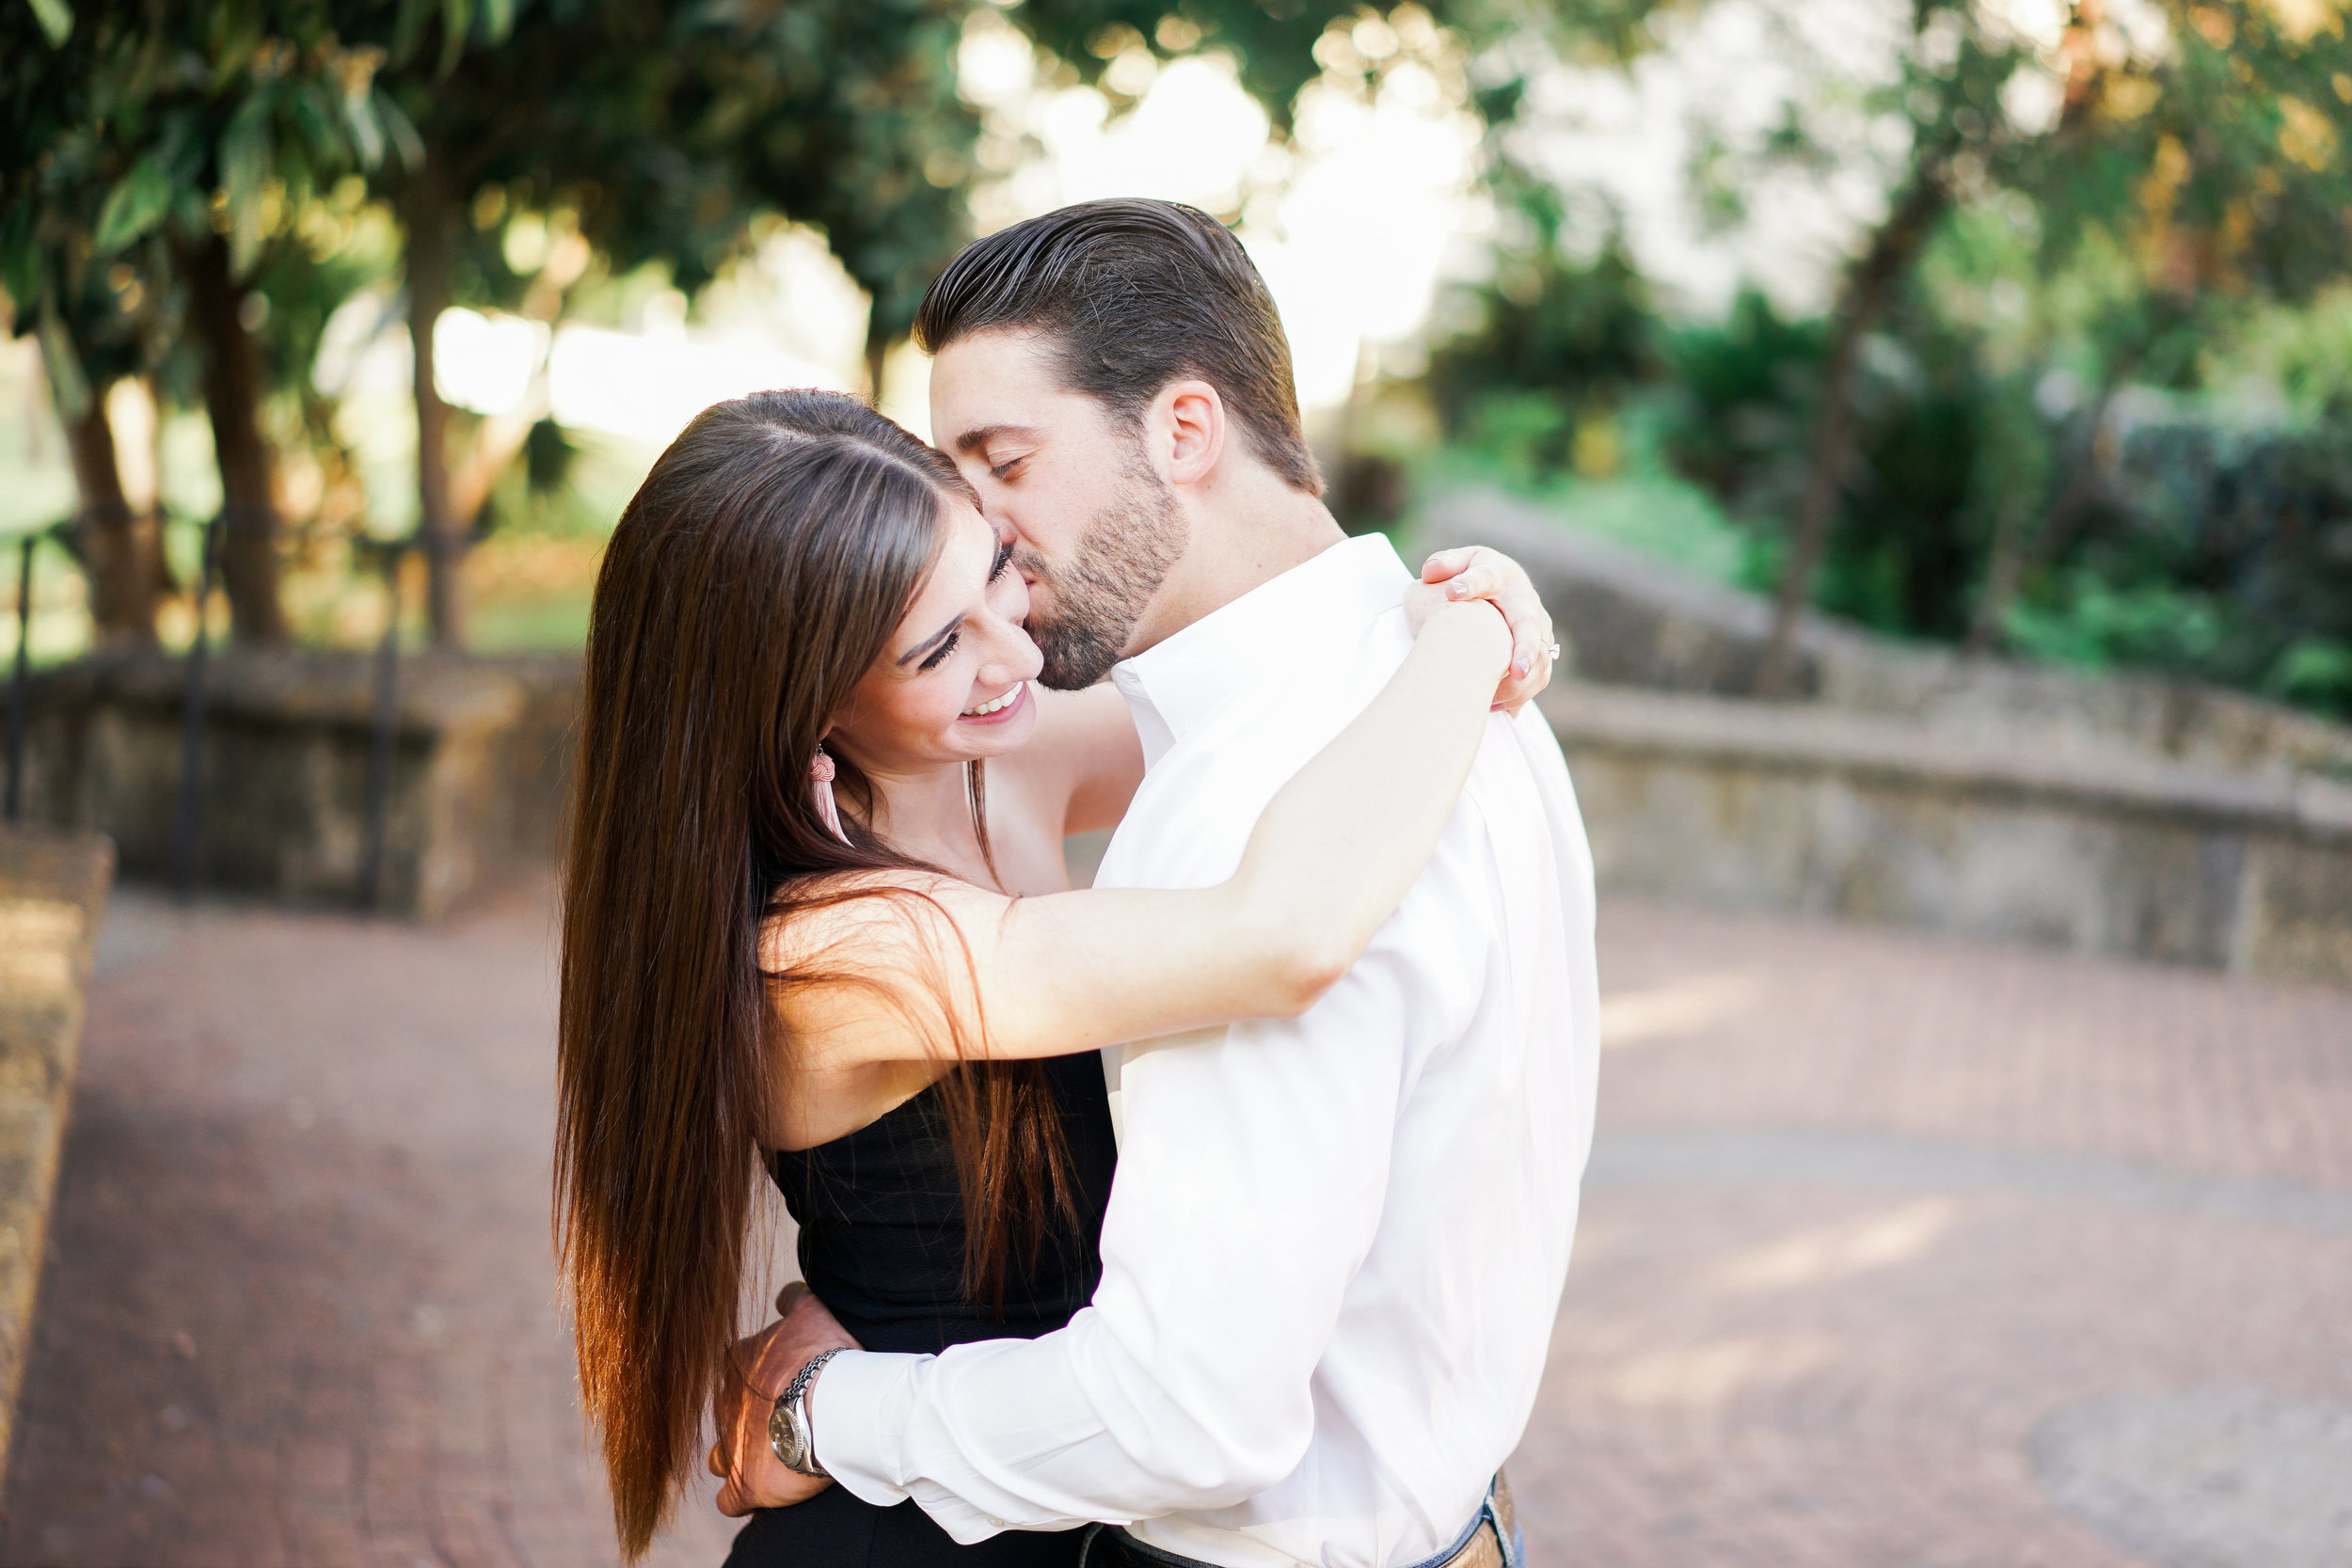 San Antonio engagement session at the McNay Art Museum.